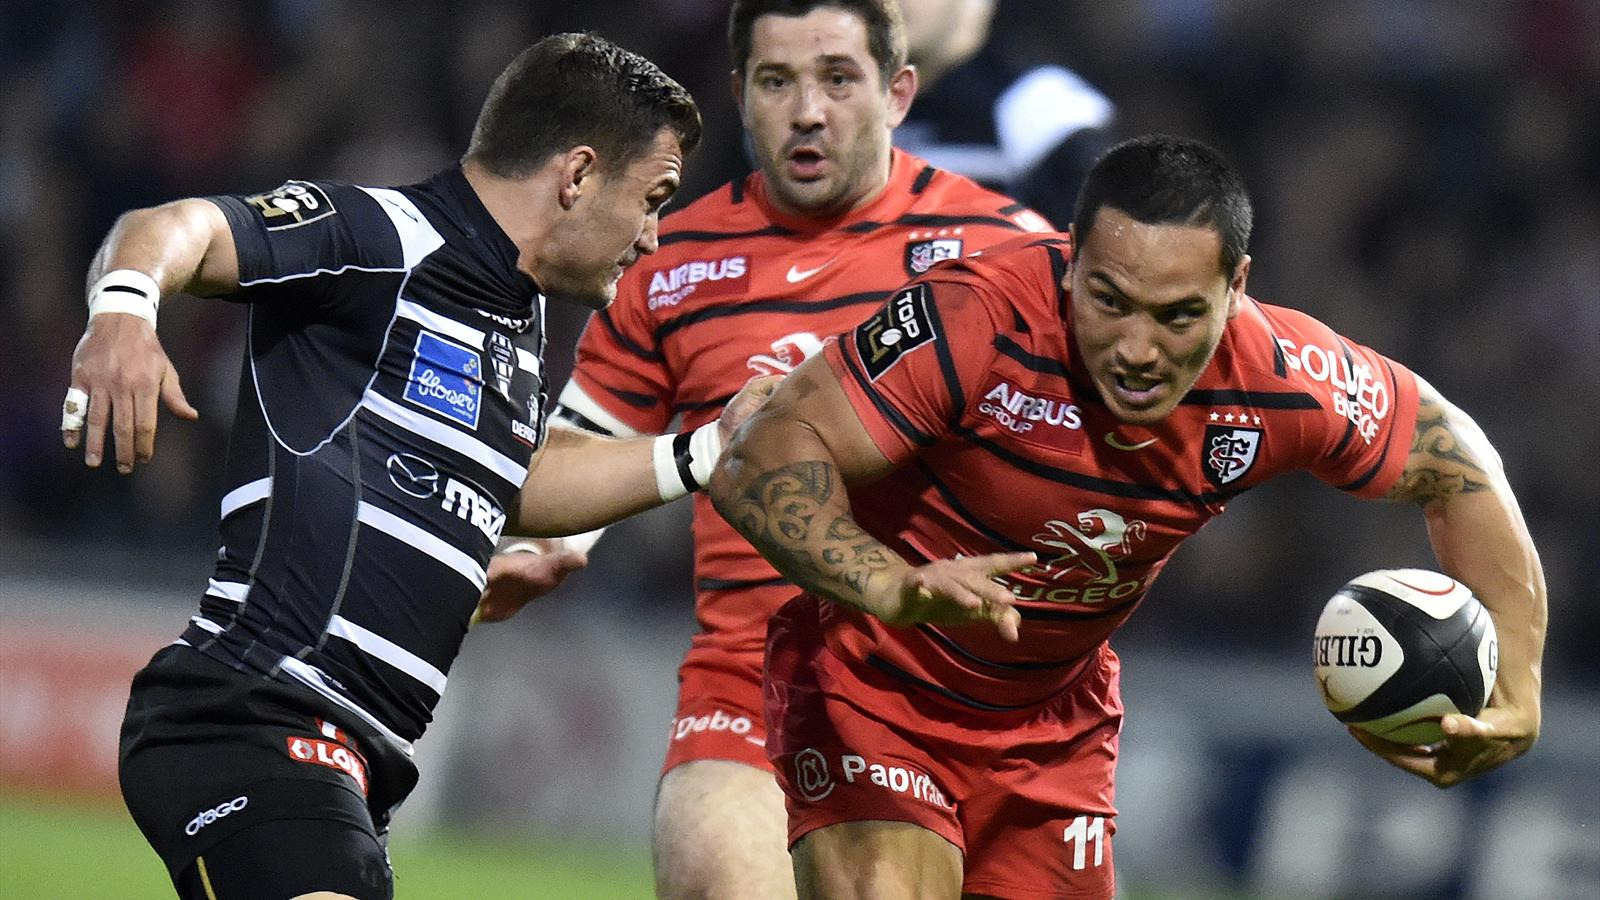 Hosea Gear - toulouse brive - 12 avril 2014